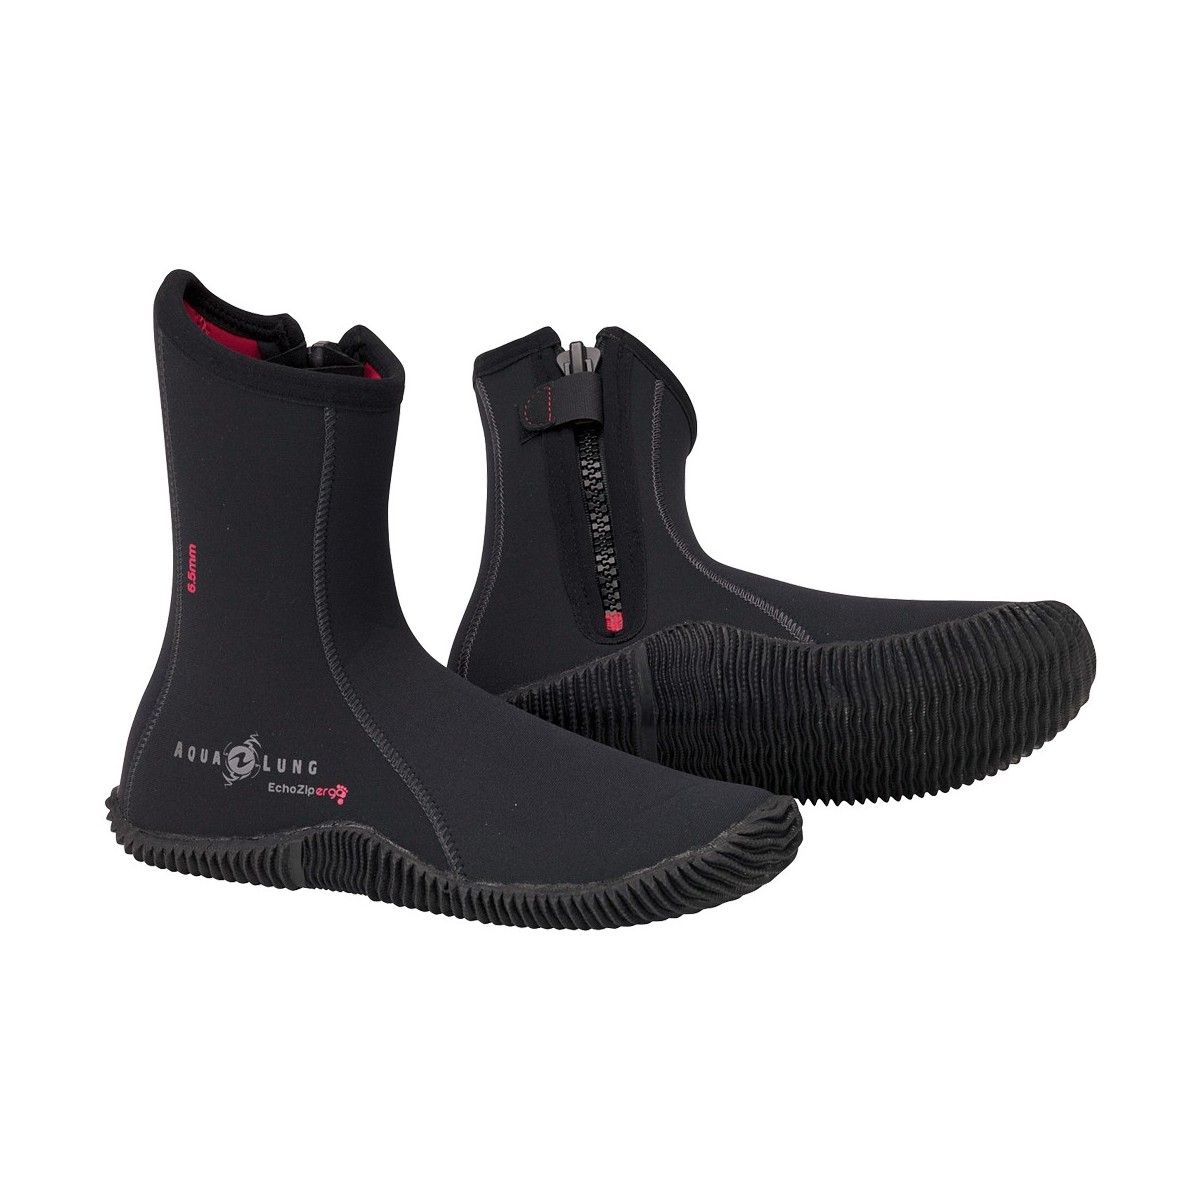 Aqua Lung 3mm Echozip Ergo Boot